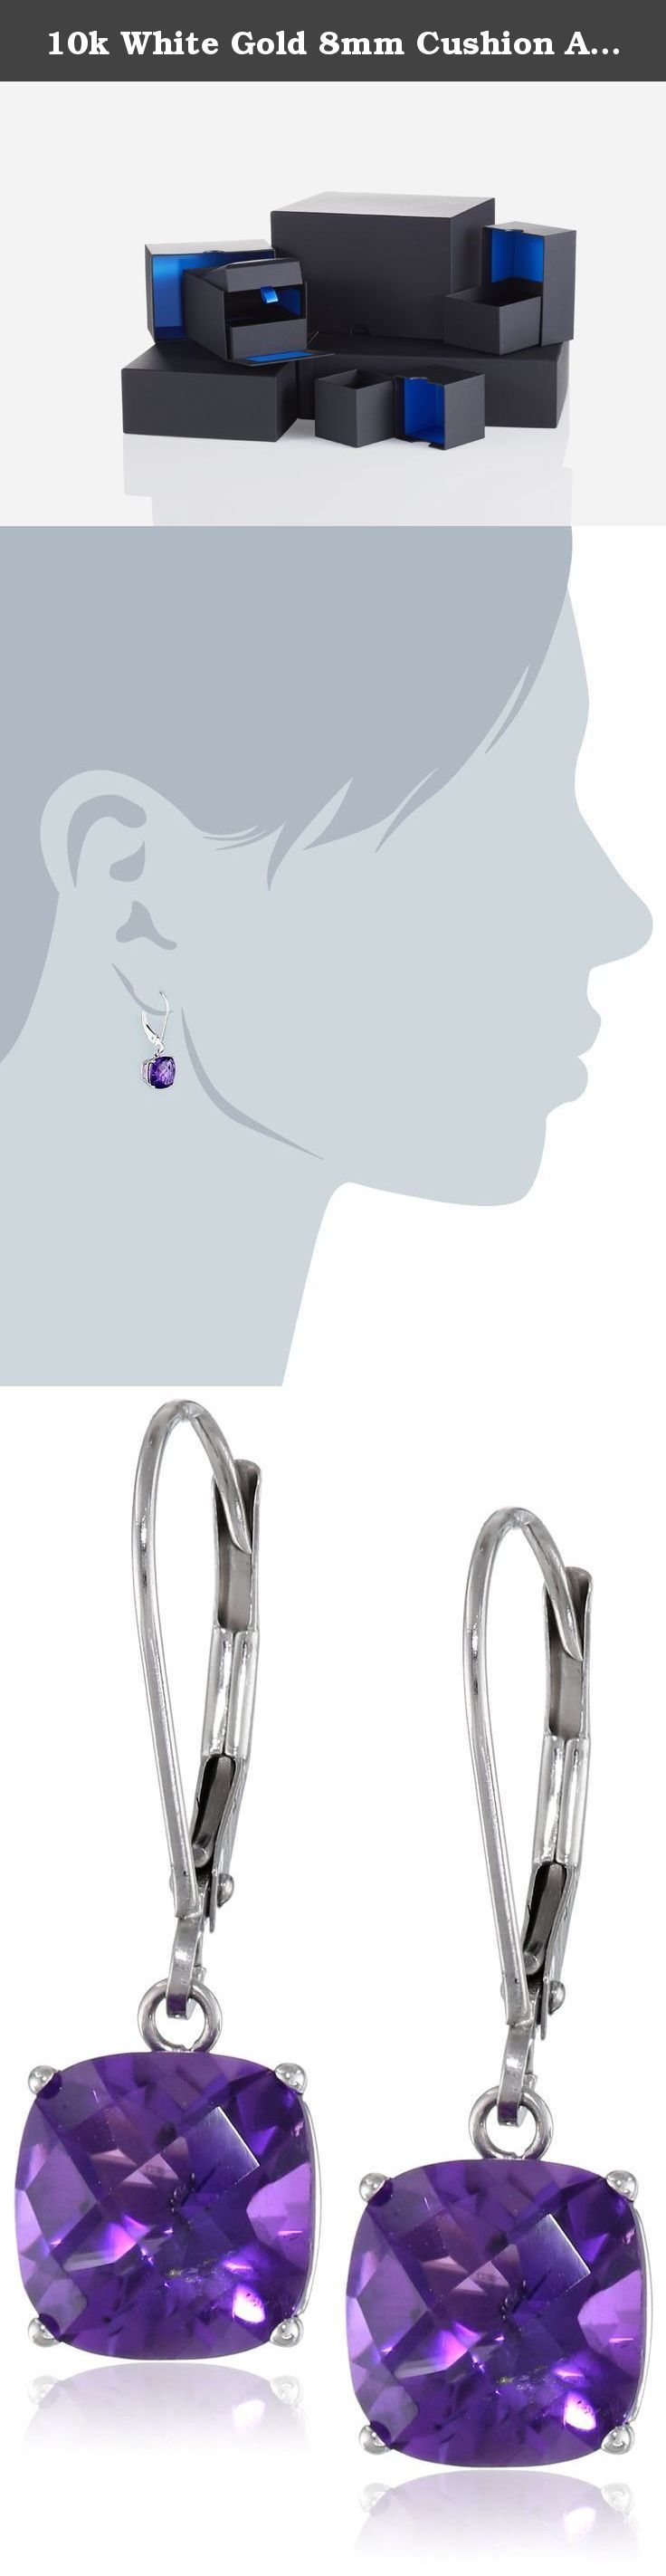 10k White Gold 8mm Cushion Amethyst Lever Back Earrings. White gold earring featuring cushion-cut gemstone in four-prong setting with lever-back closure. The natural properties and composition of mined gemstones define the unique beauty of each piece. The image may show slight differences to the actual stone in color and texture. Gemstones may have been treated to improve their appearance or durability and may require special care. Domestic. Lever-back earrings with cushion-cut gemstone...